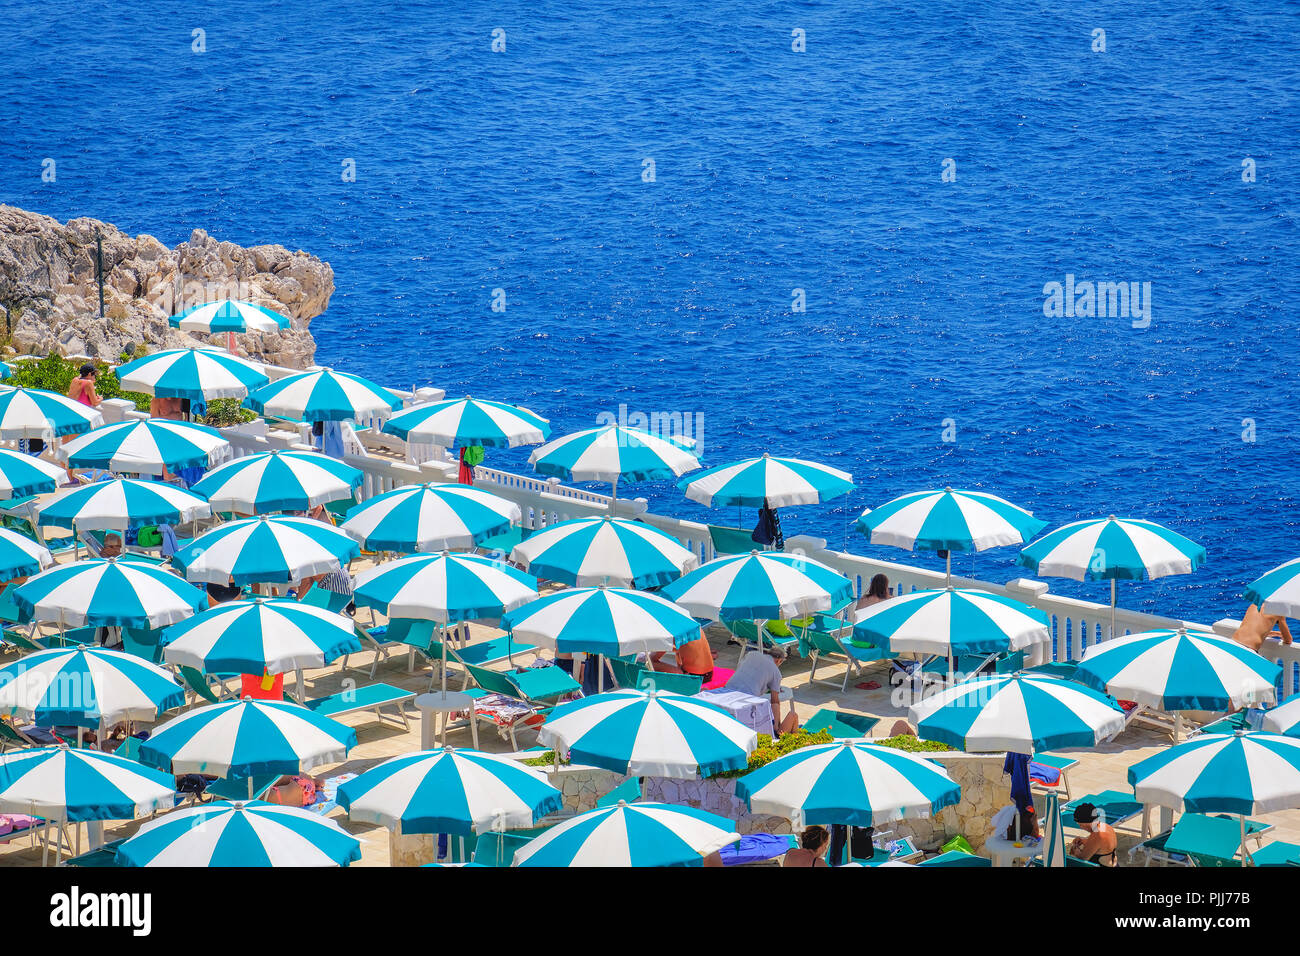 beach umbrellas top view aerial perspective - Stock Image